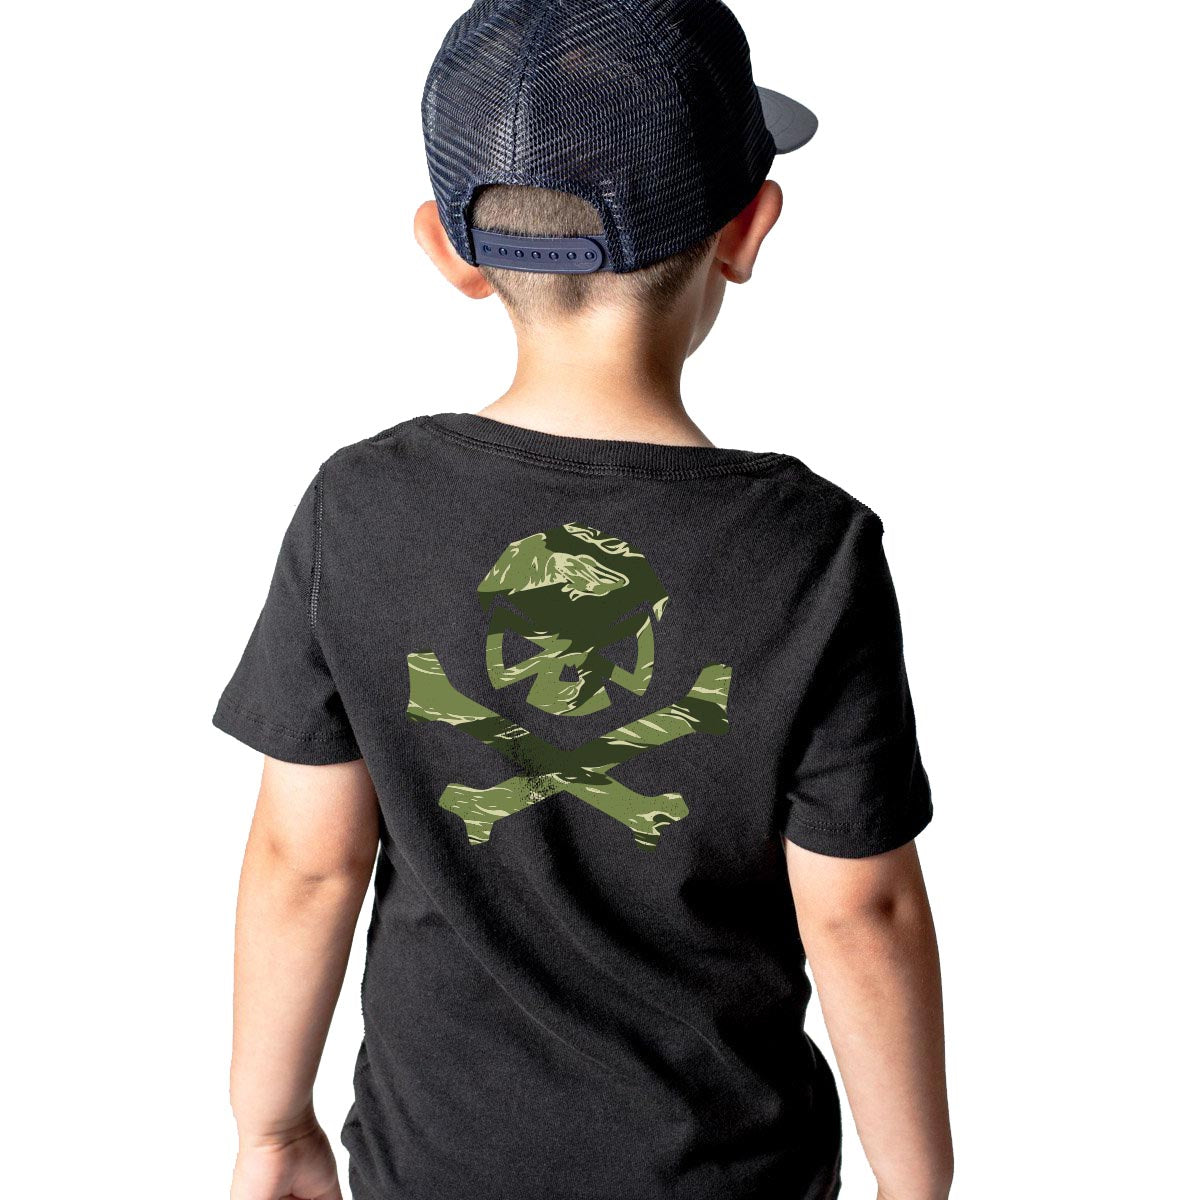 Tiger Stripe Camo - Youth - Black/Green - T-Shirts - Pipe Hitters Union